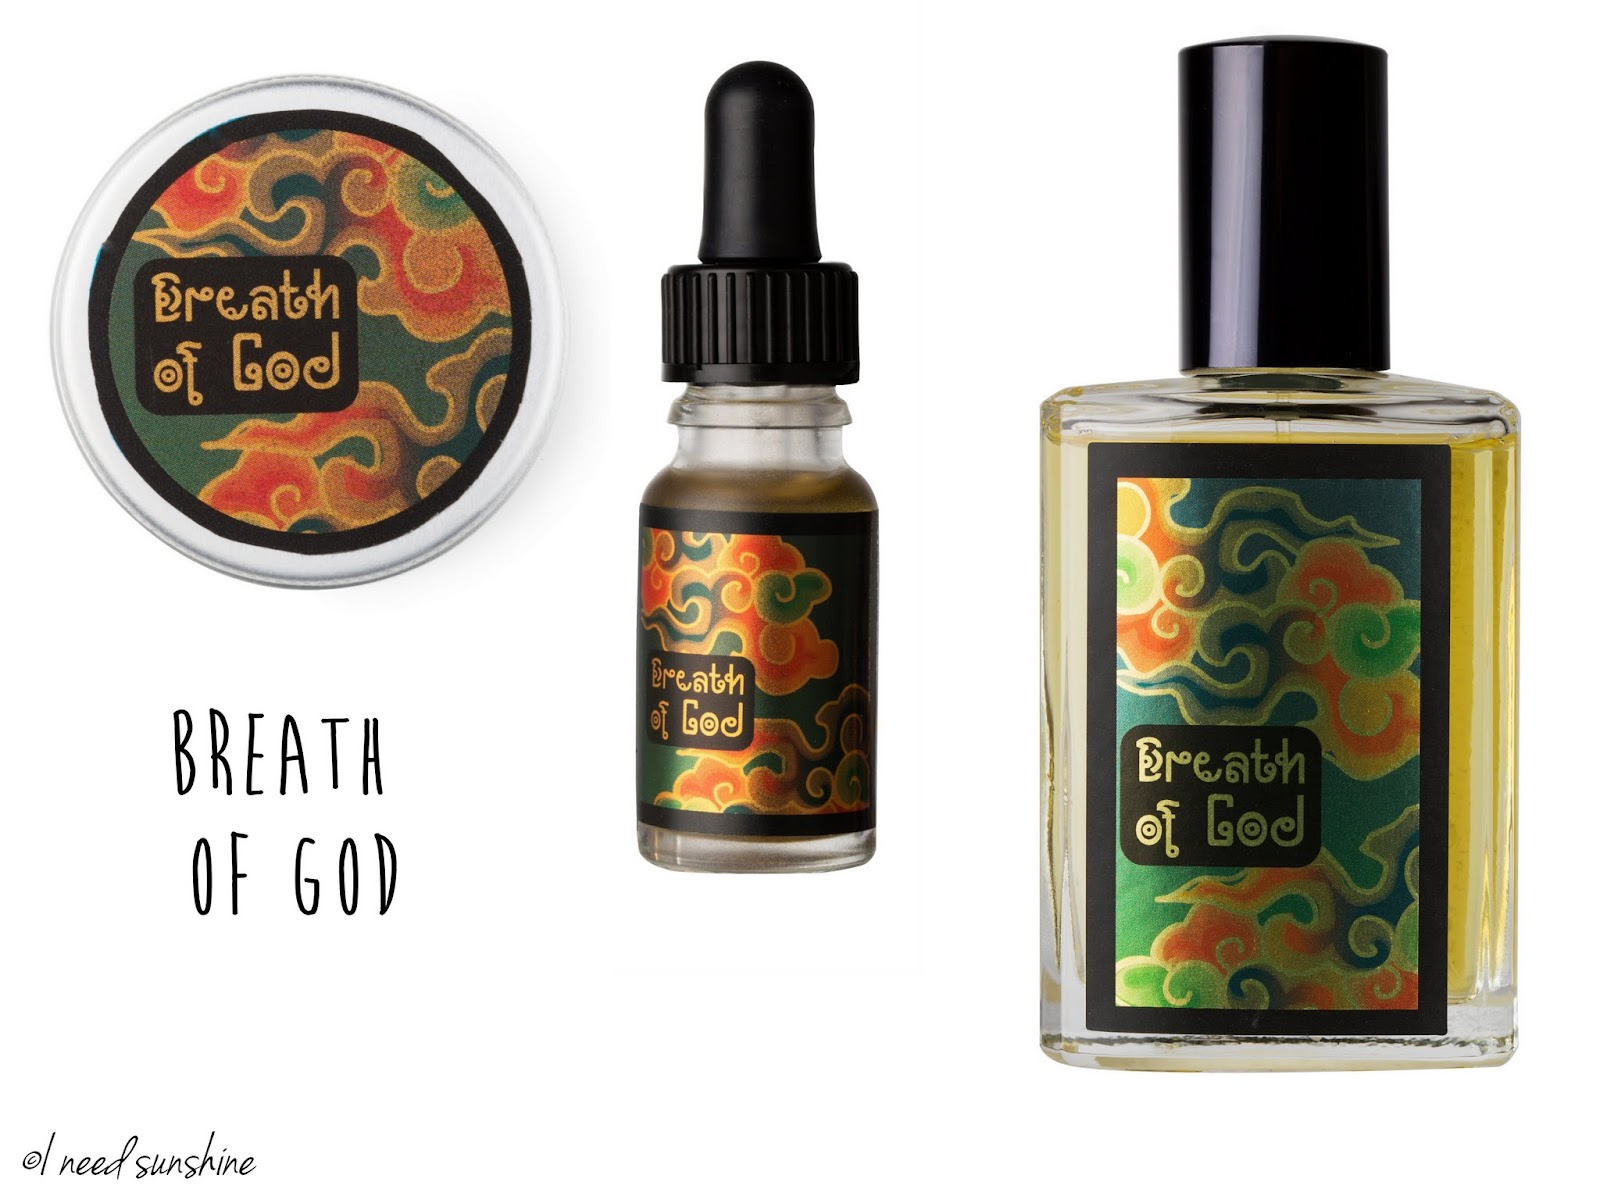 Lush Breath of God